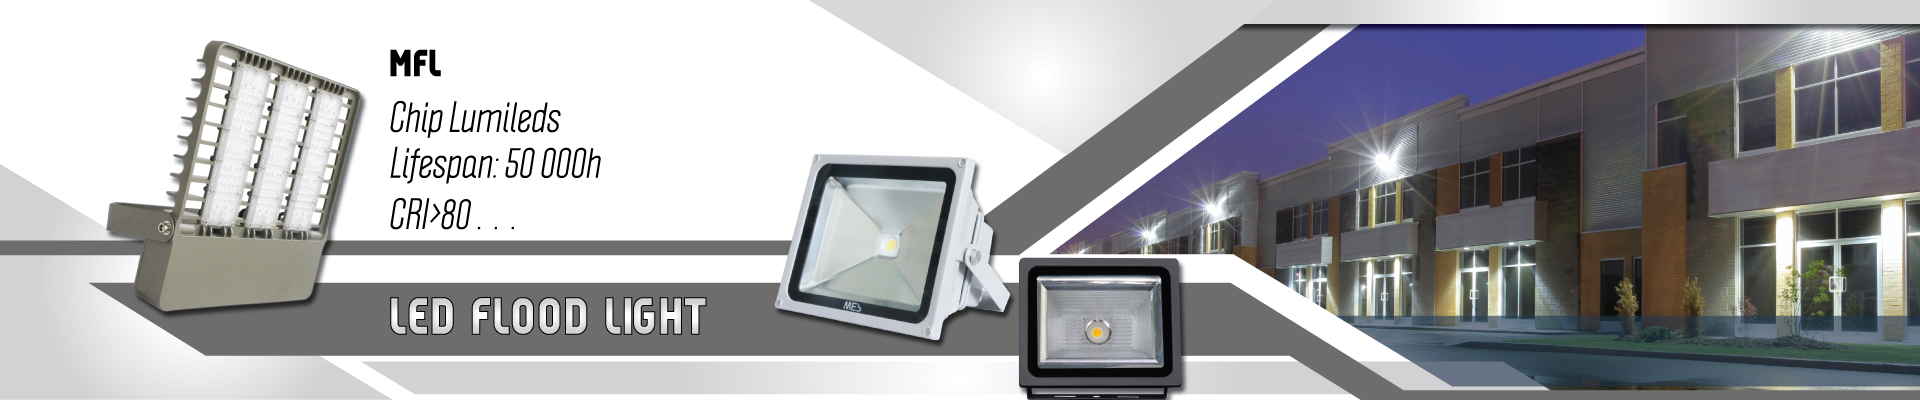 LED Flood Light 45W</br>MFL603